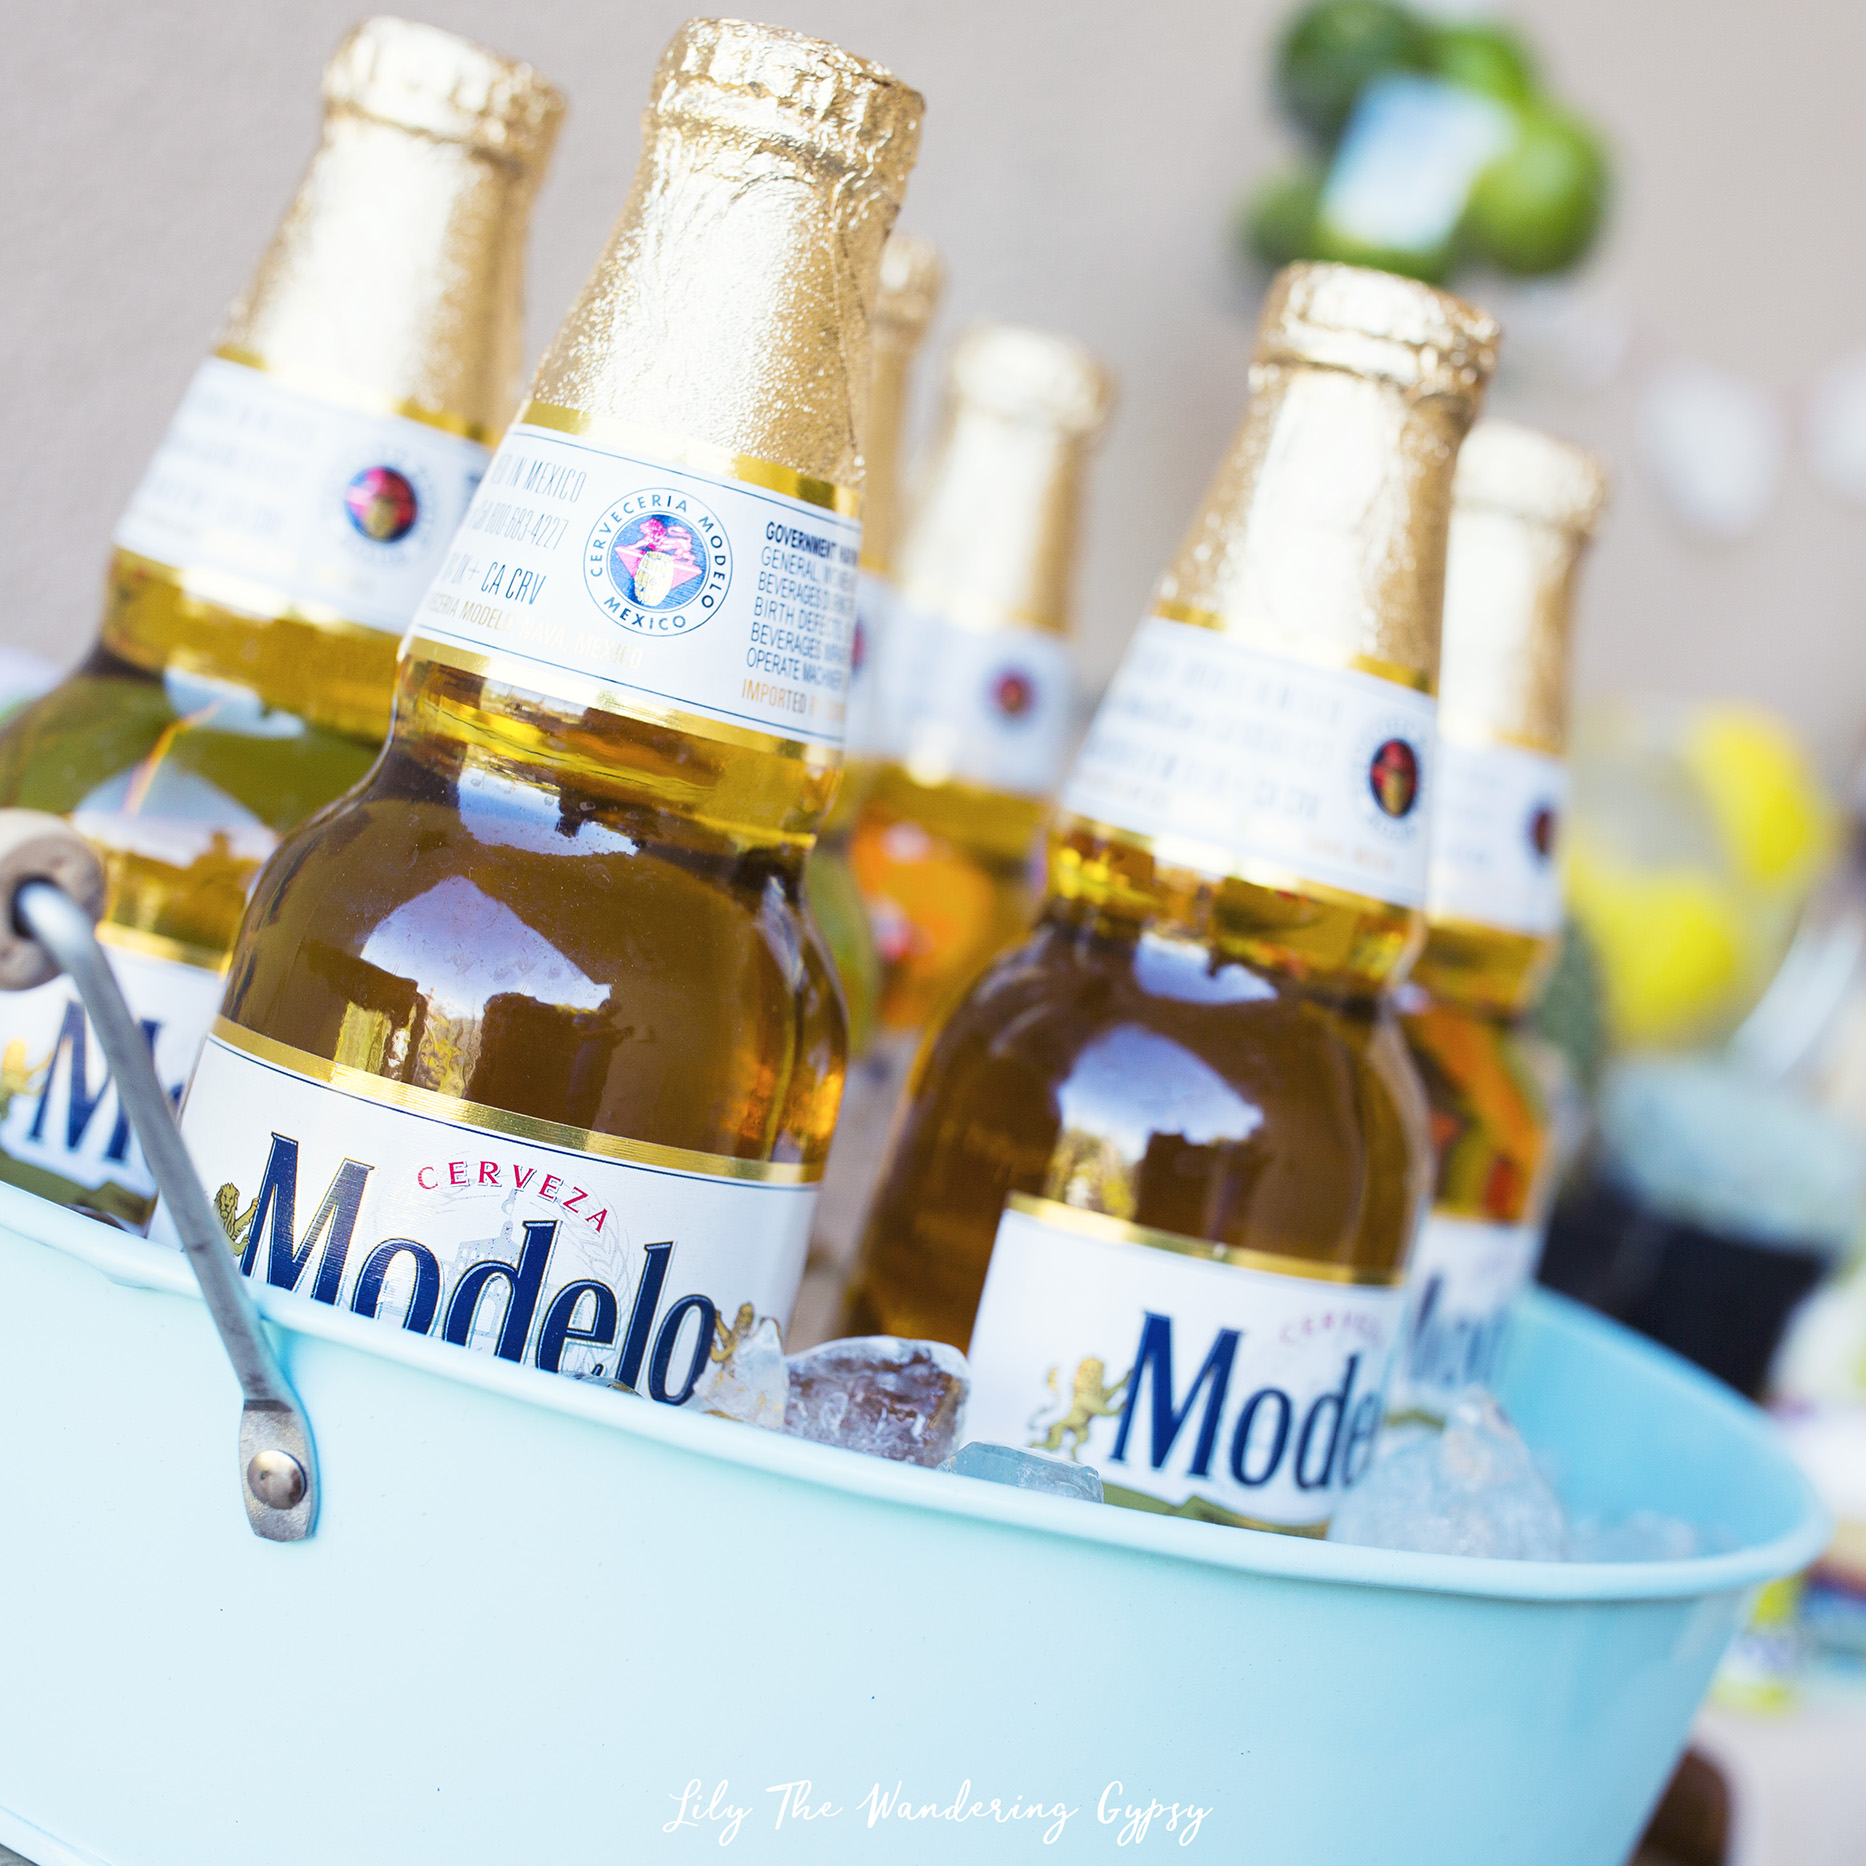 A Fun Cinco De Mayo Party With Corona And Modelo Lily The Wandering Gypsy